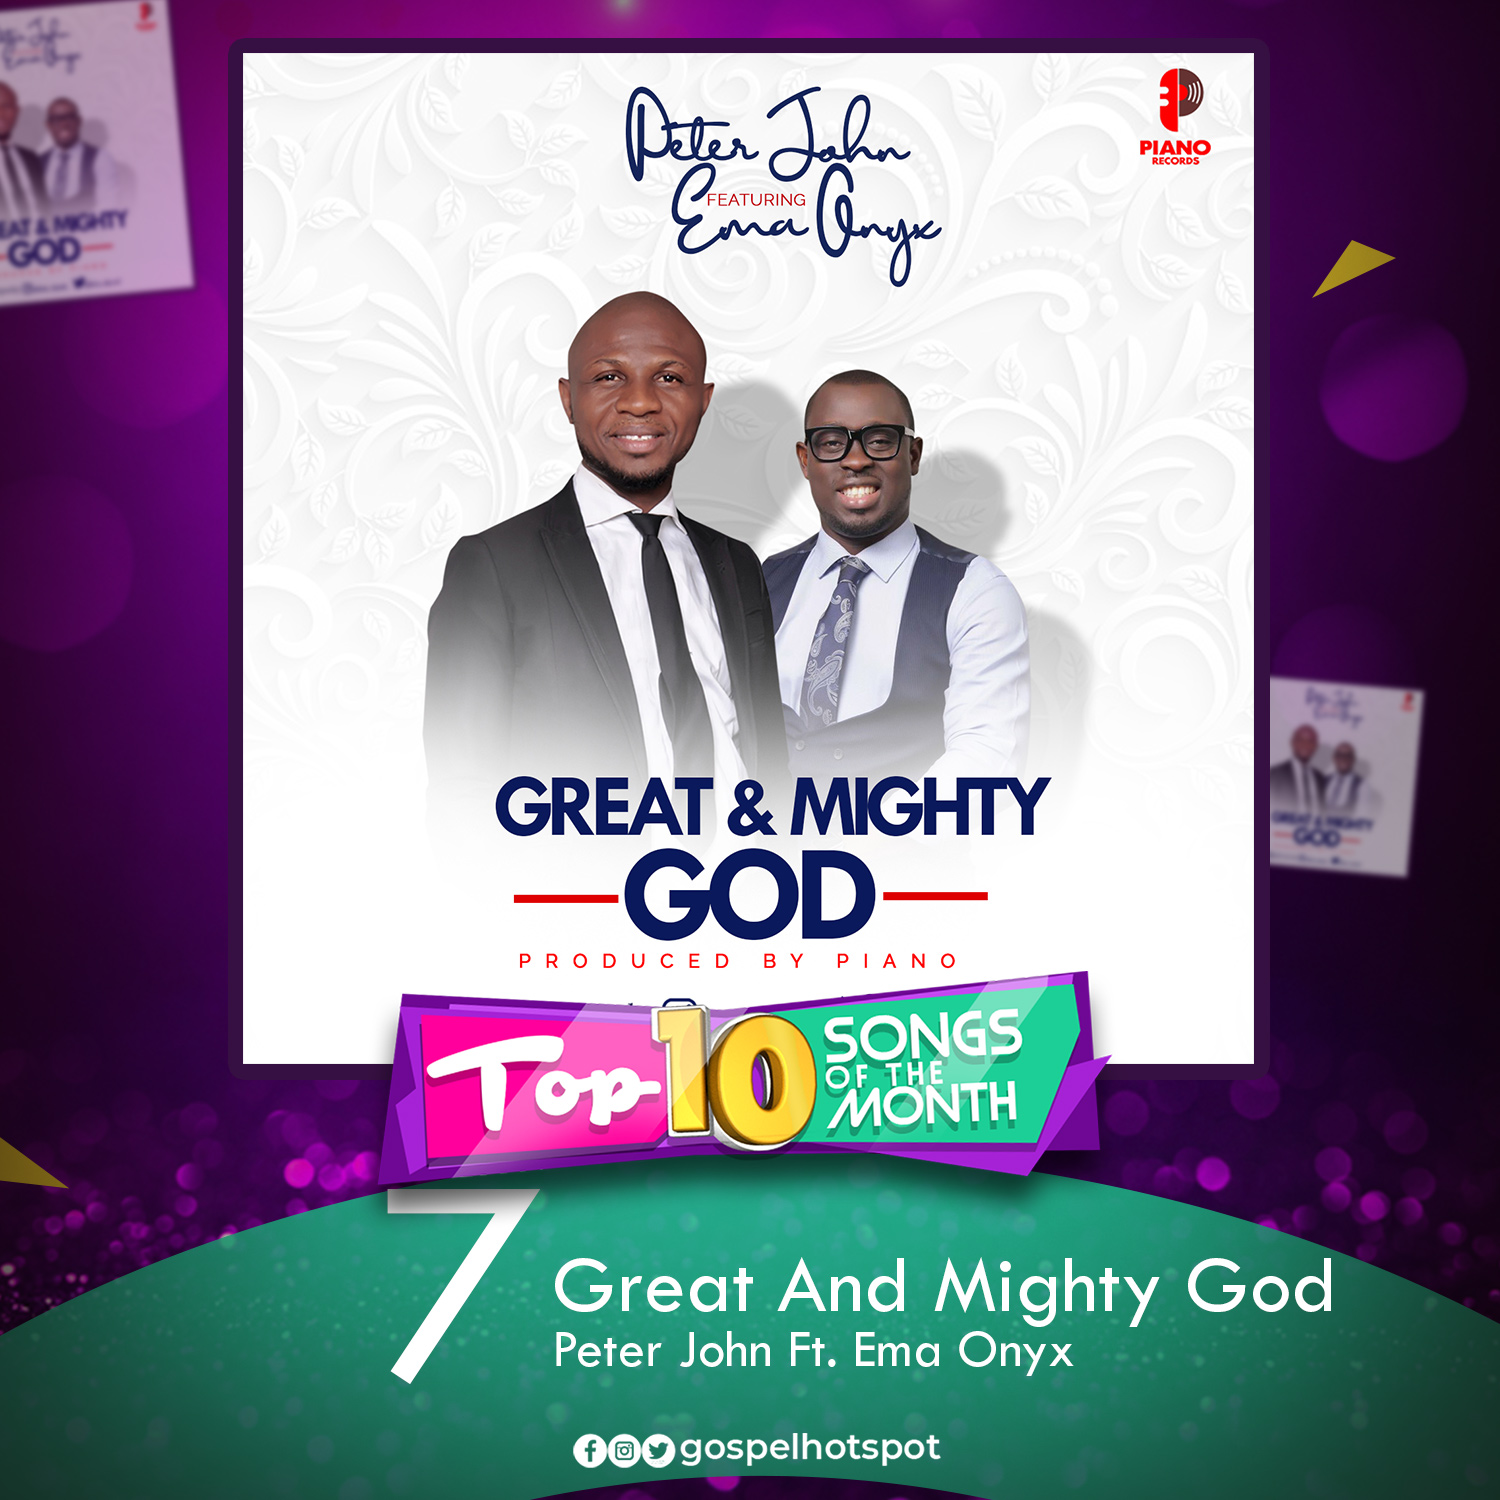 Great And Mighty God – Peter John Ft. Ema Onyx